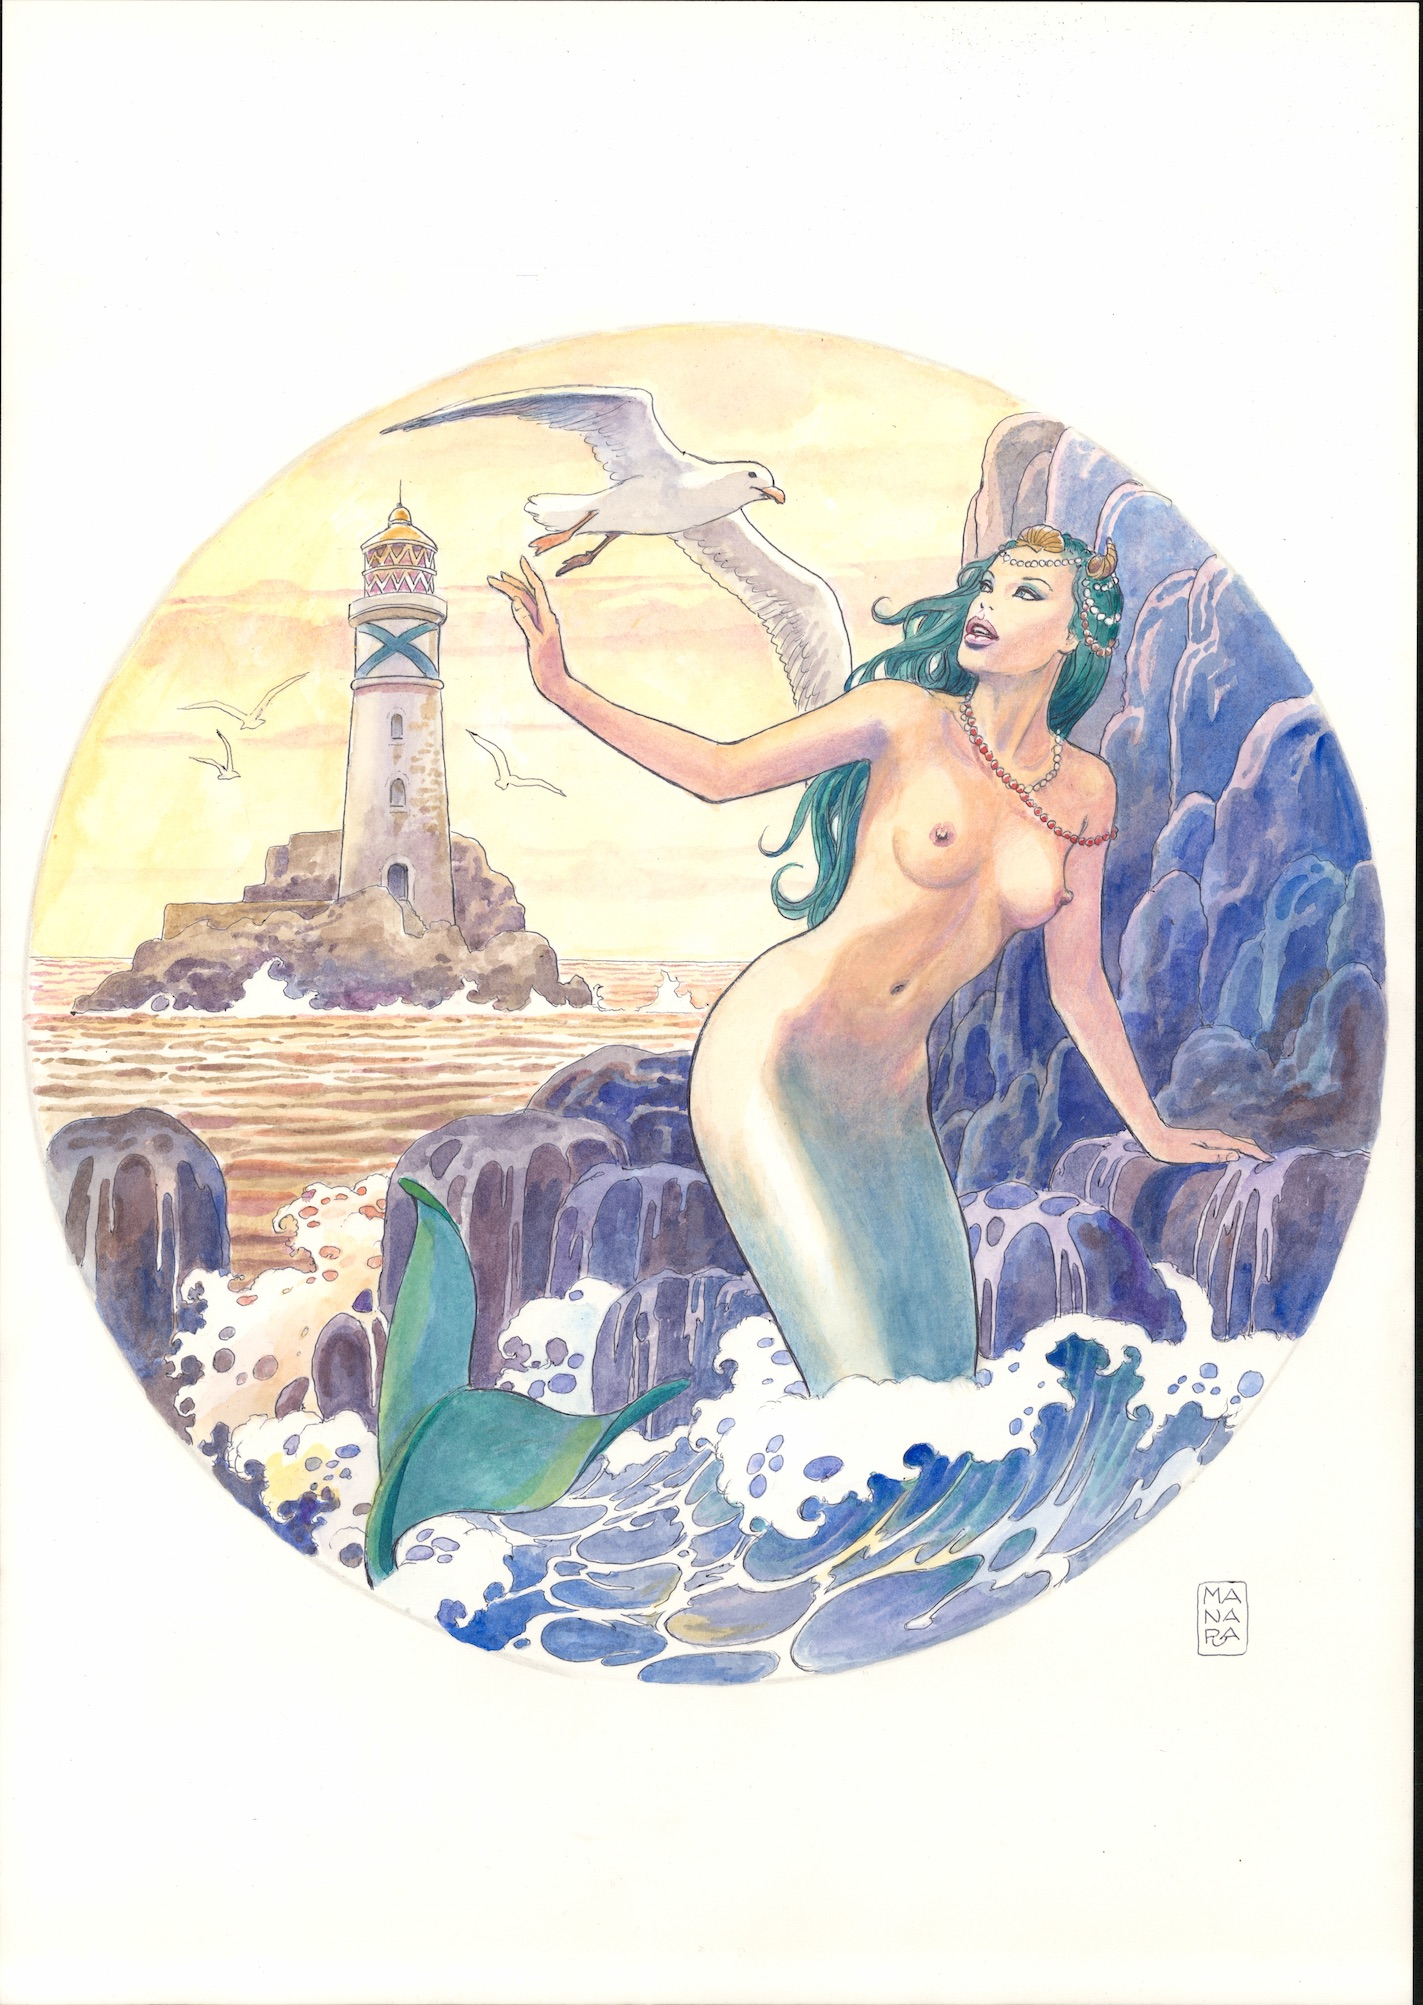 Ulysse Nardin Classico  erotic watches are deigned by Milo Manara.